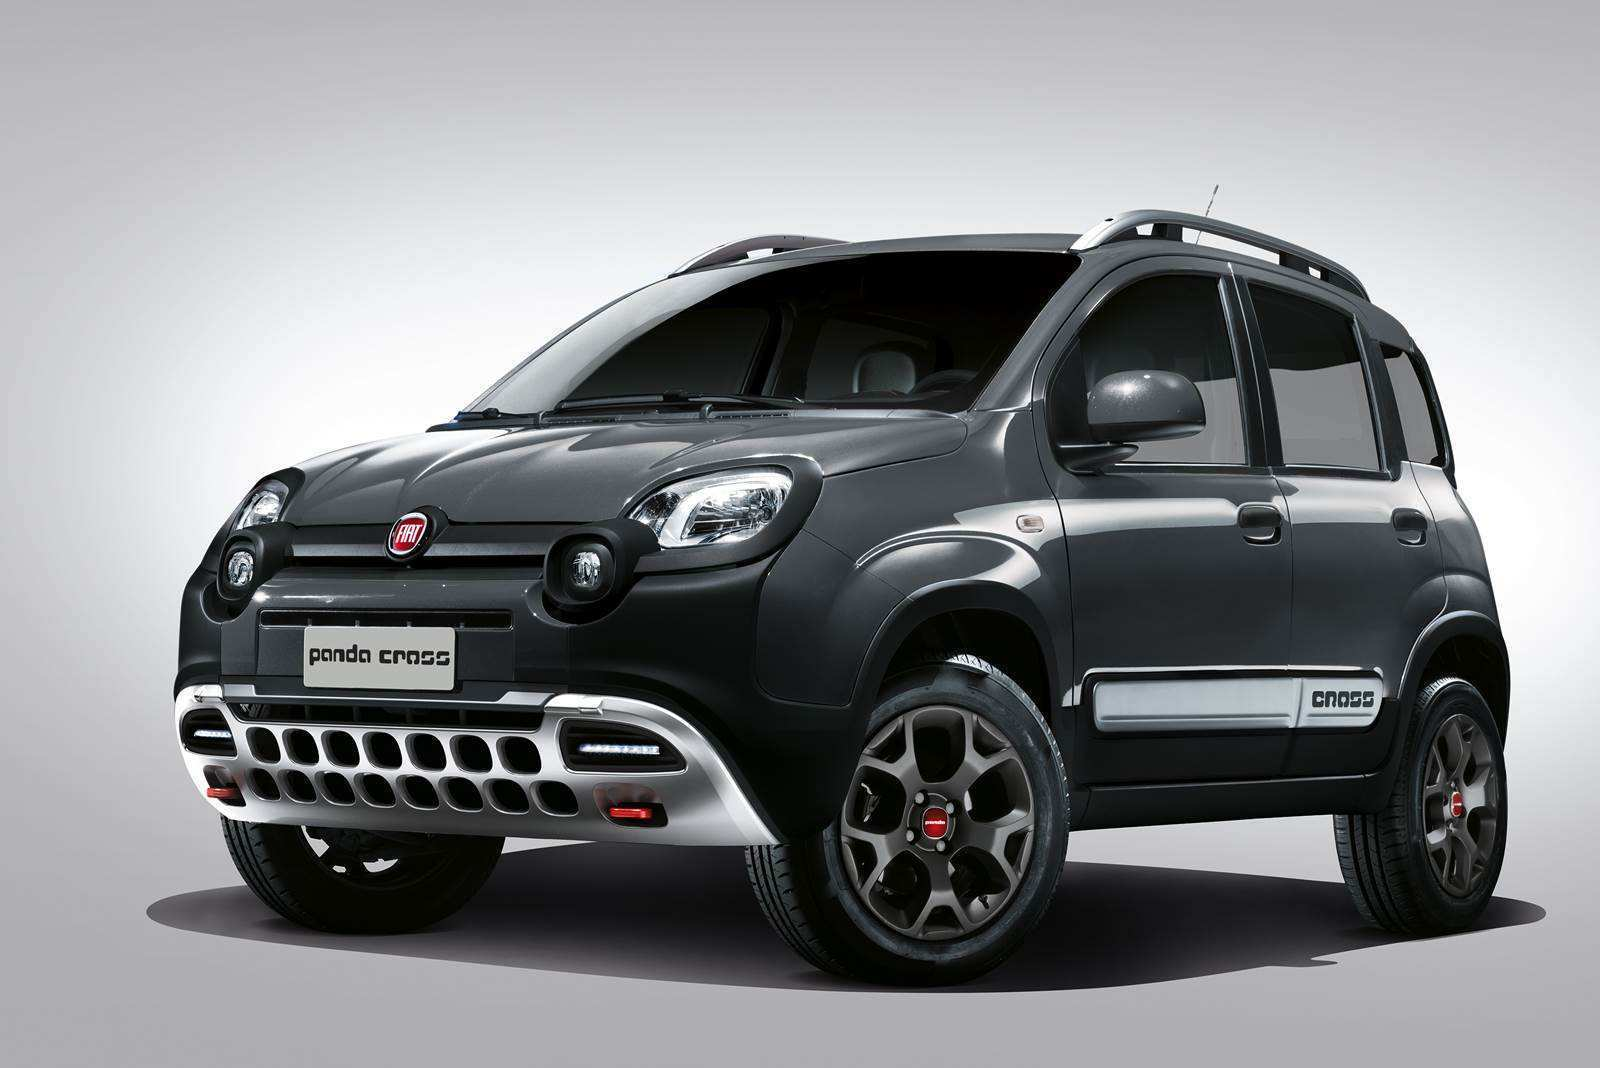 17 Concept of Novedades Fiat 2020 Rumors by Novedades Fiat 2020